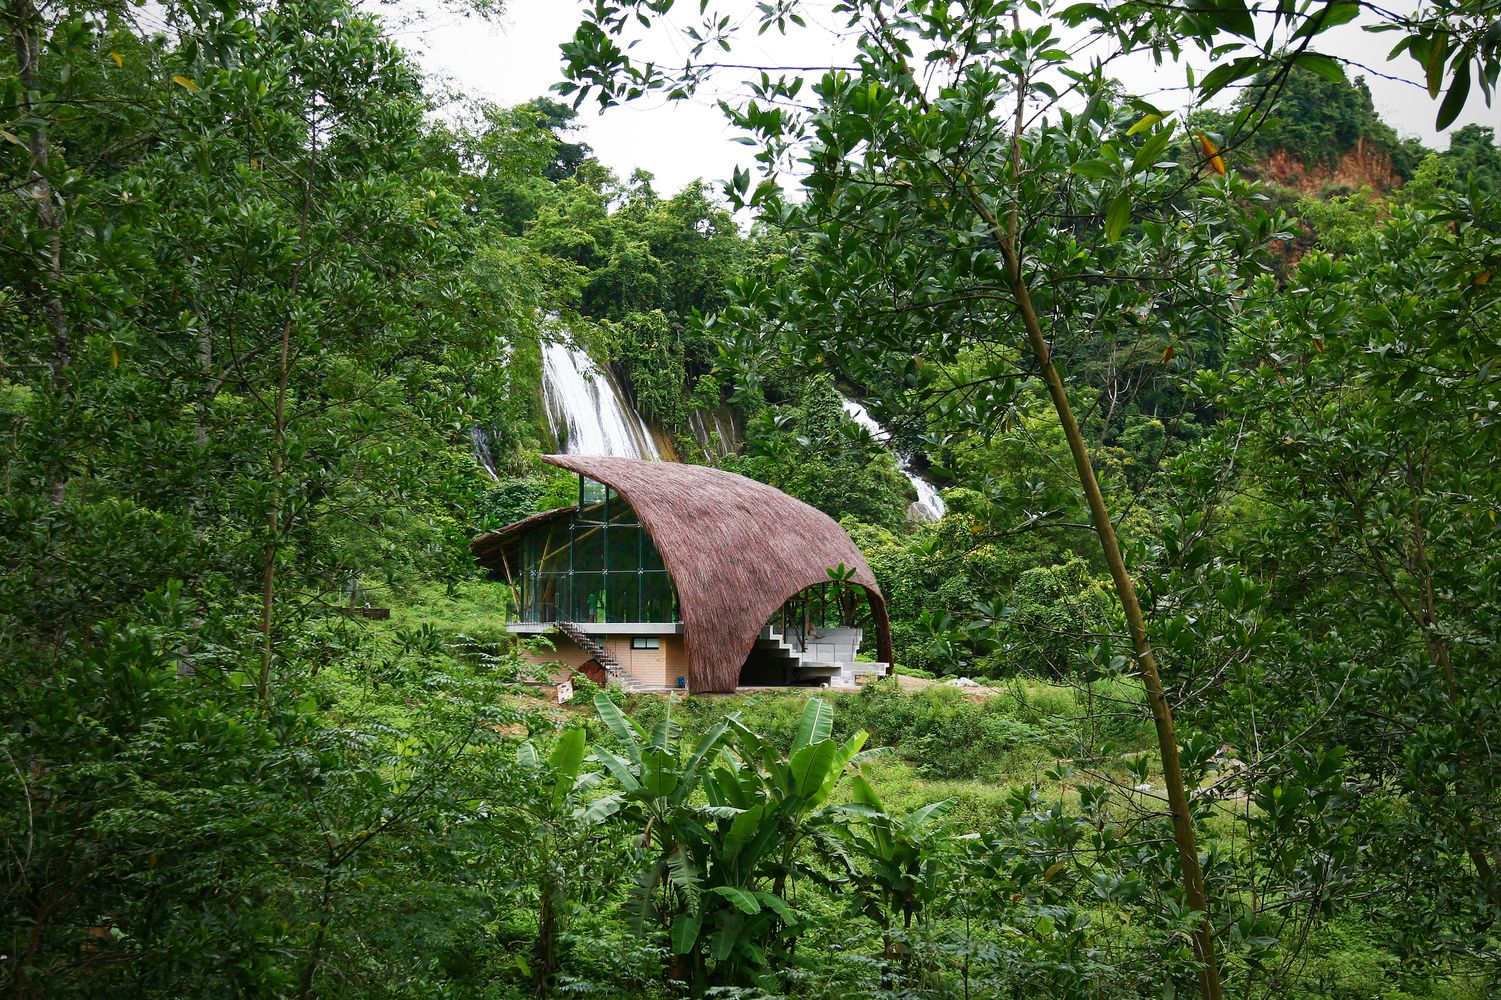 Gallery Of Chieng Yen Community House 1 1 2 8 Community Housing Green Architecture Thatched Roof